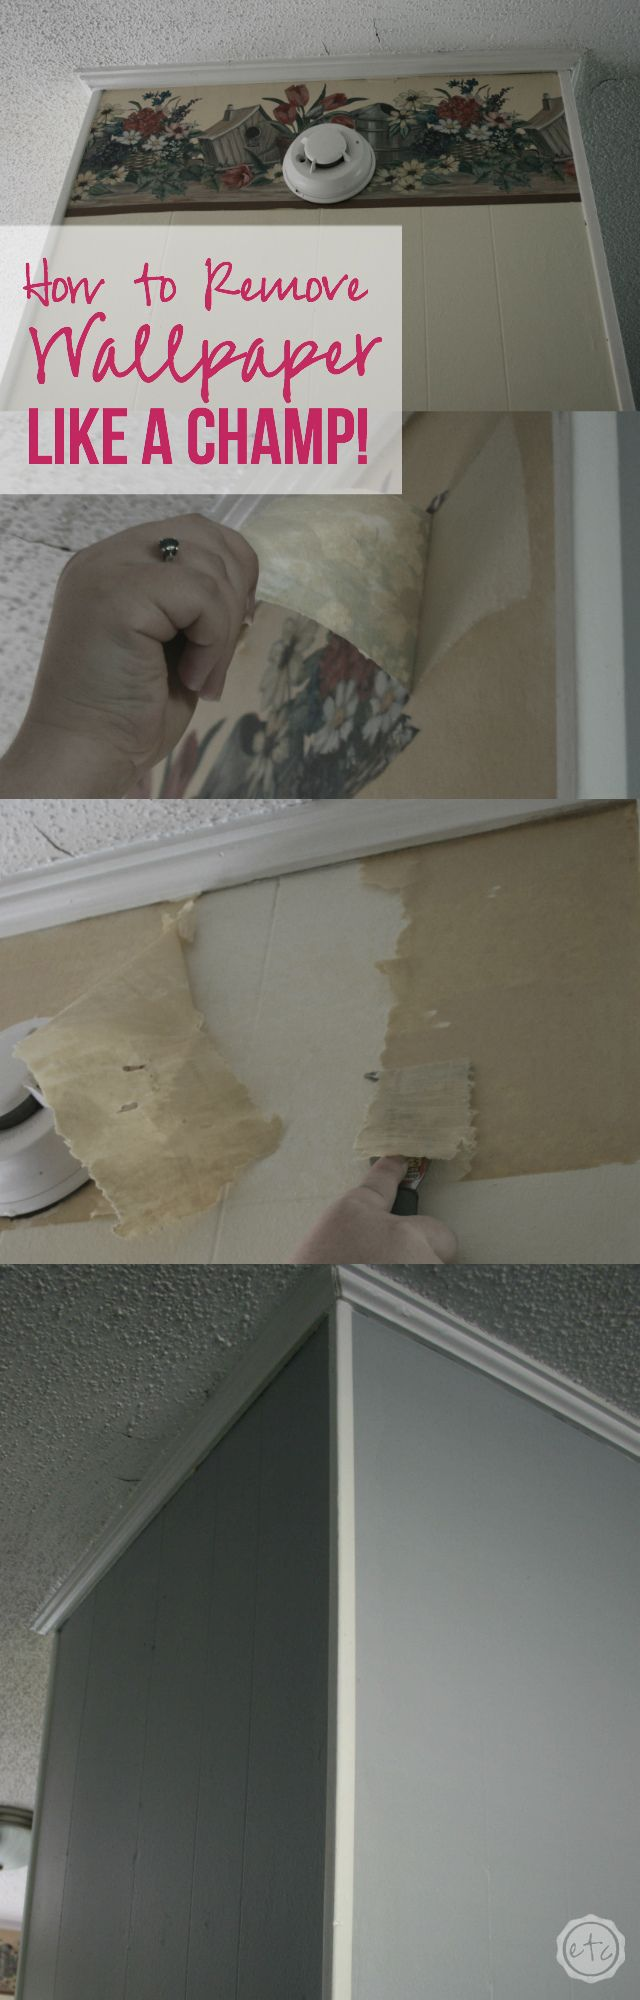 How to remove wallpaper paste from sheetrock - How To Remove Wallpaper Paste From Sheetrock 56